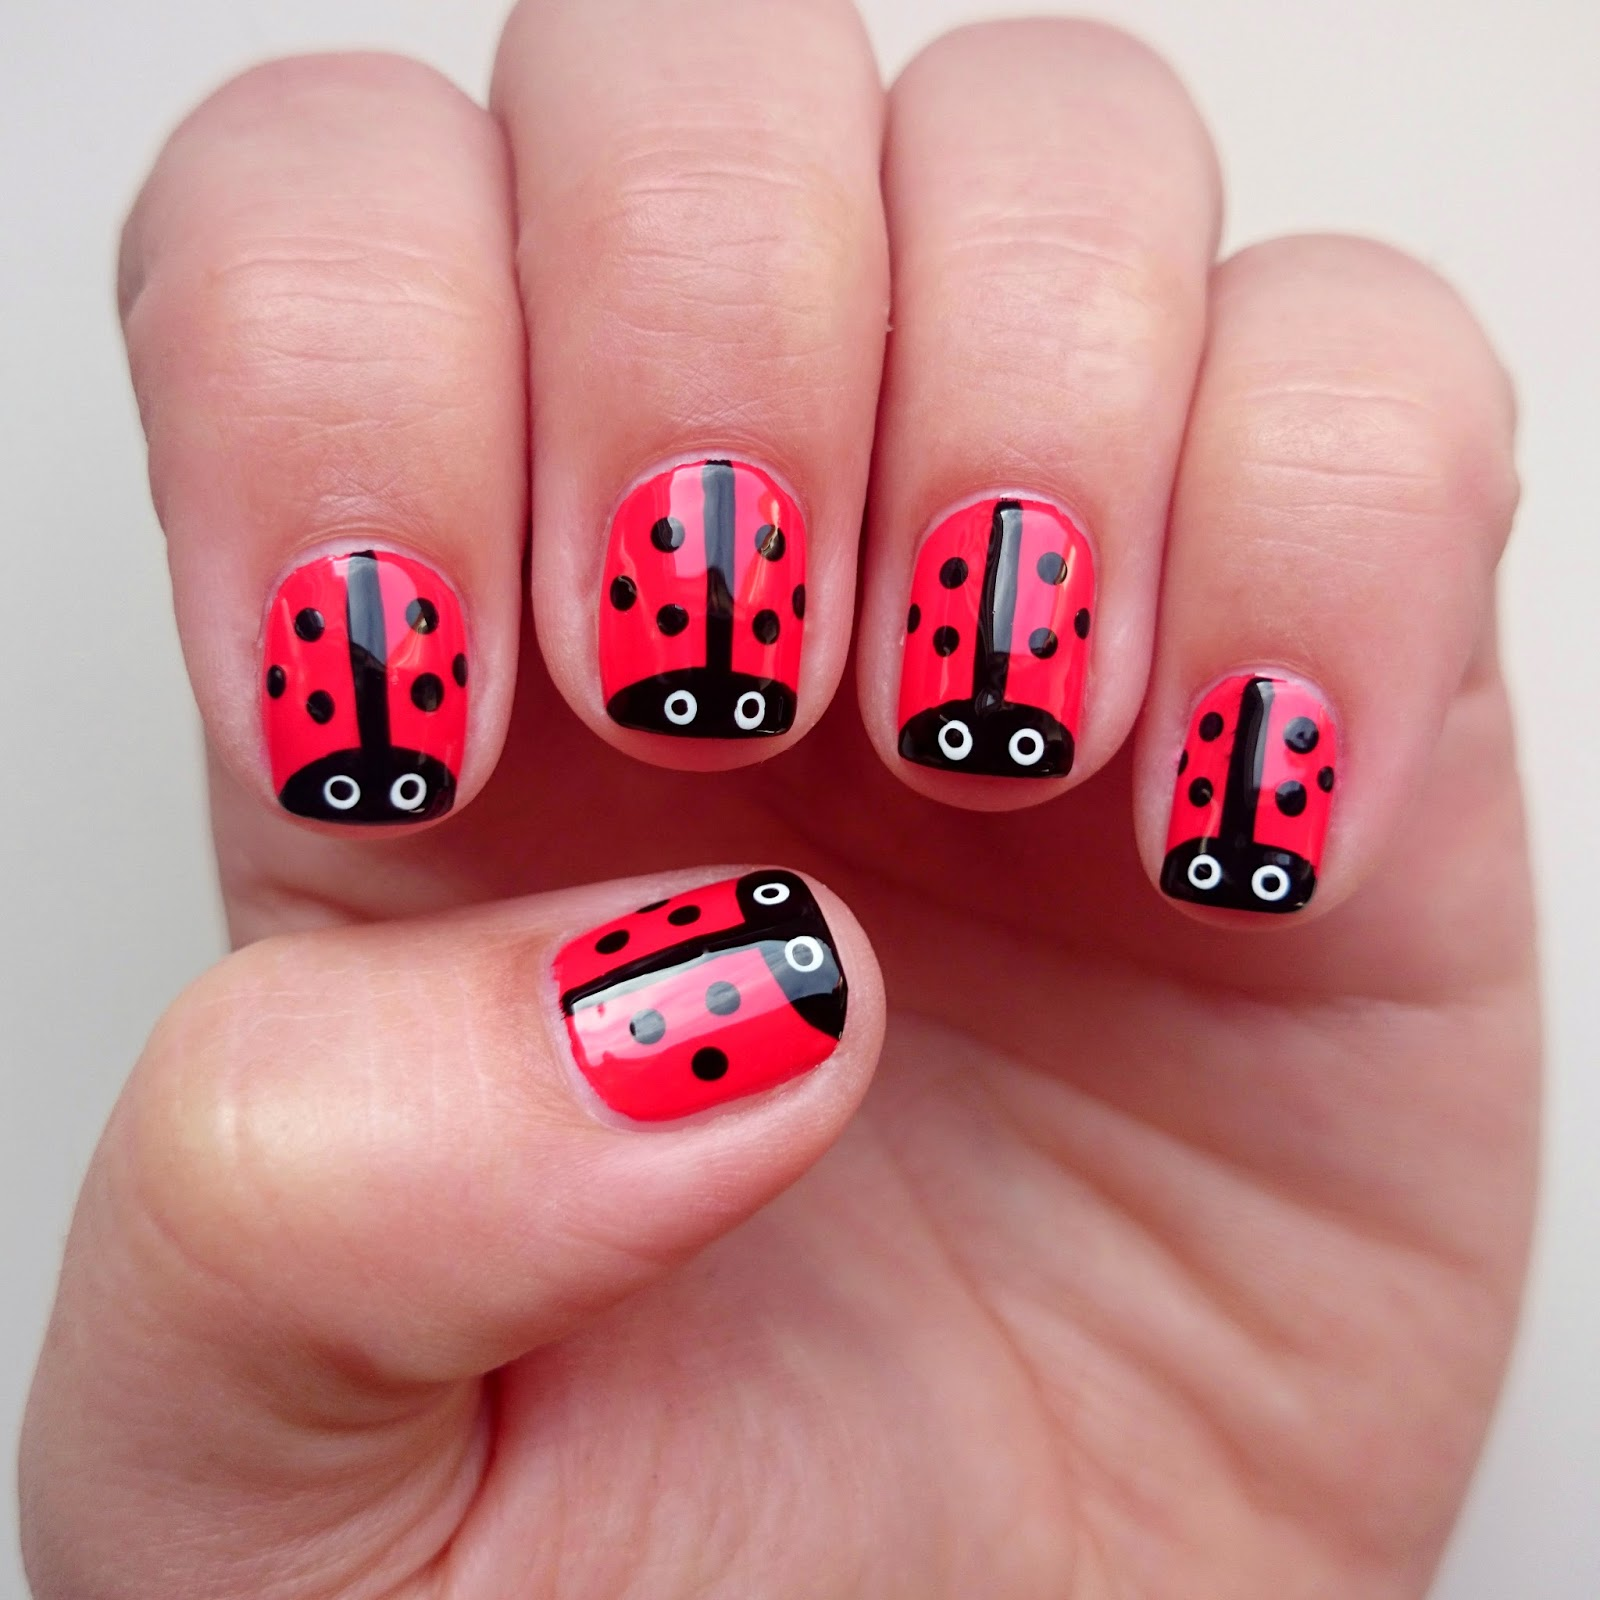 27 lazy girl nail art ideas that are actually easy buzzfeed little girl nail design - Little Girl Nail Design Ideas